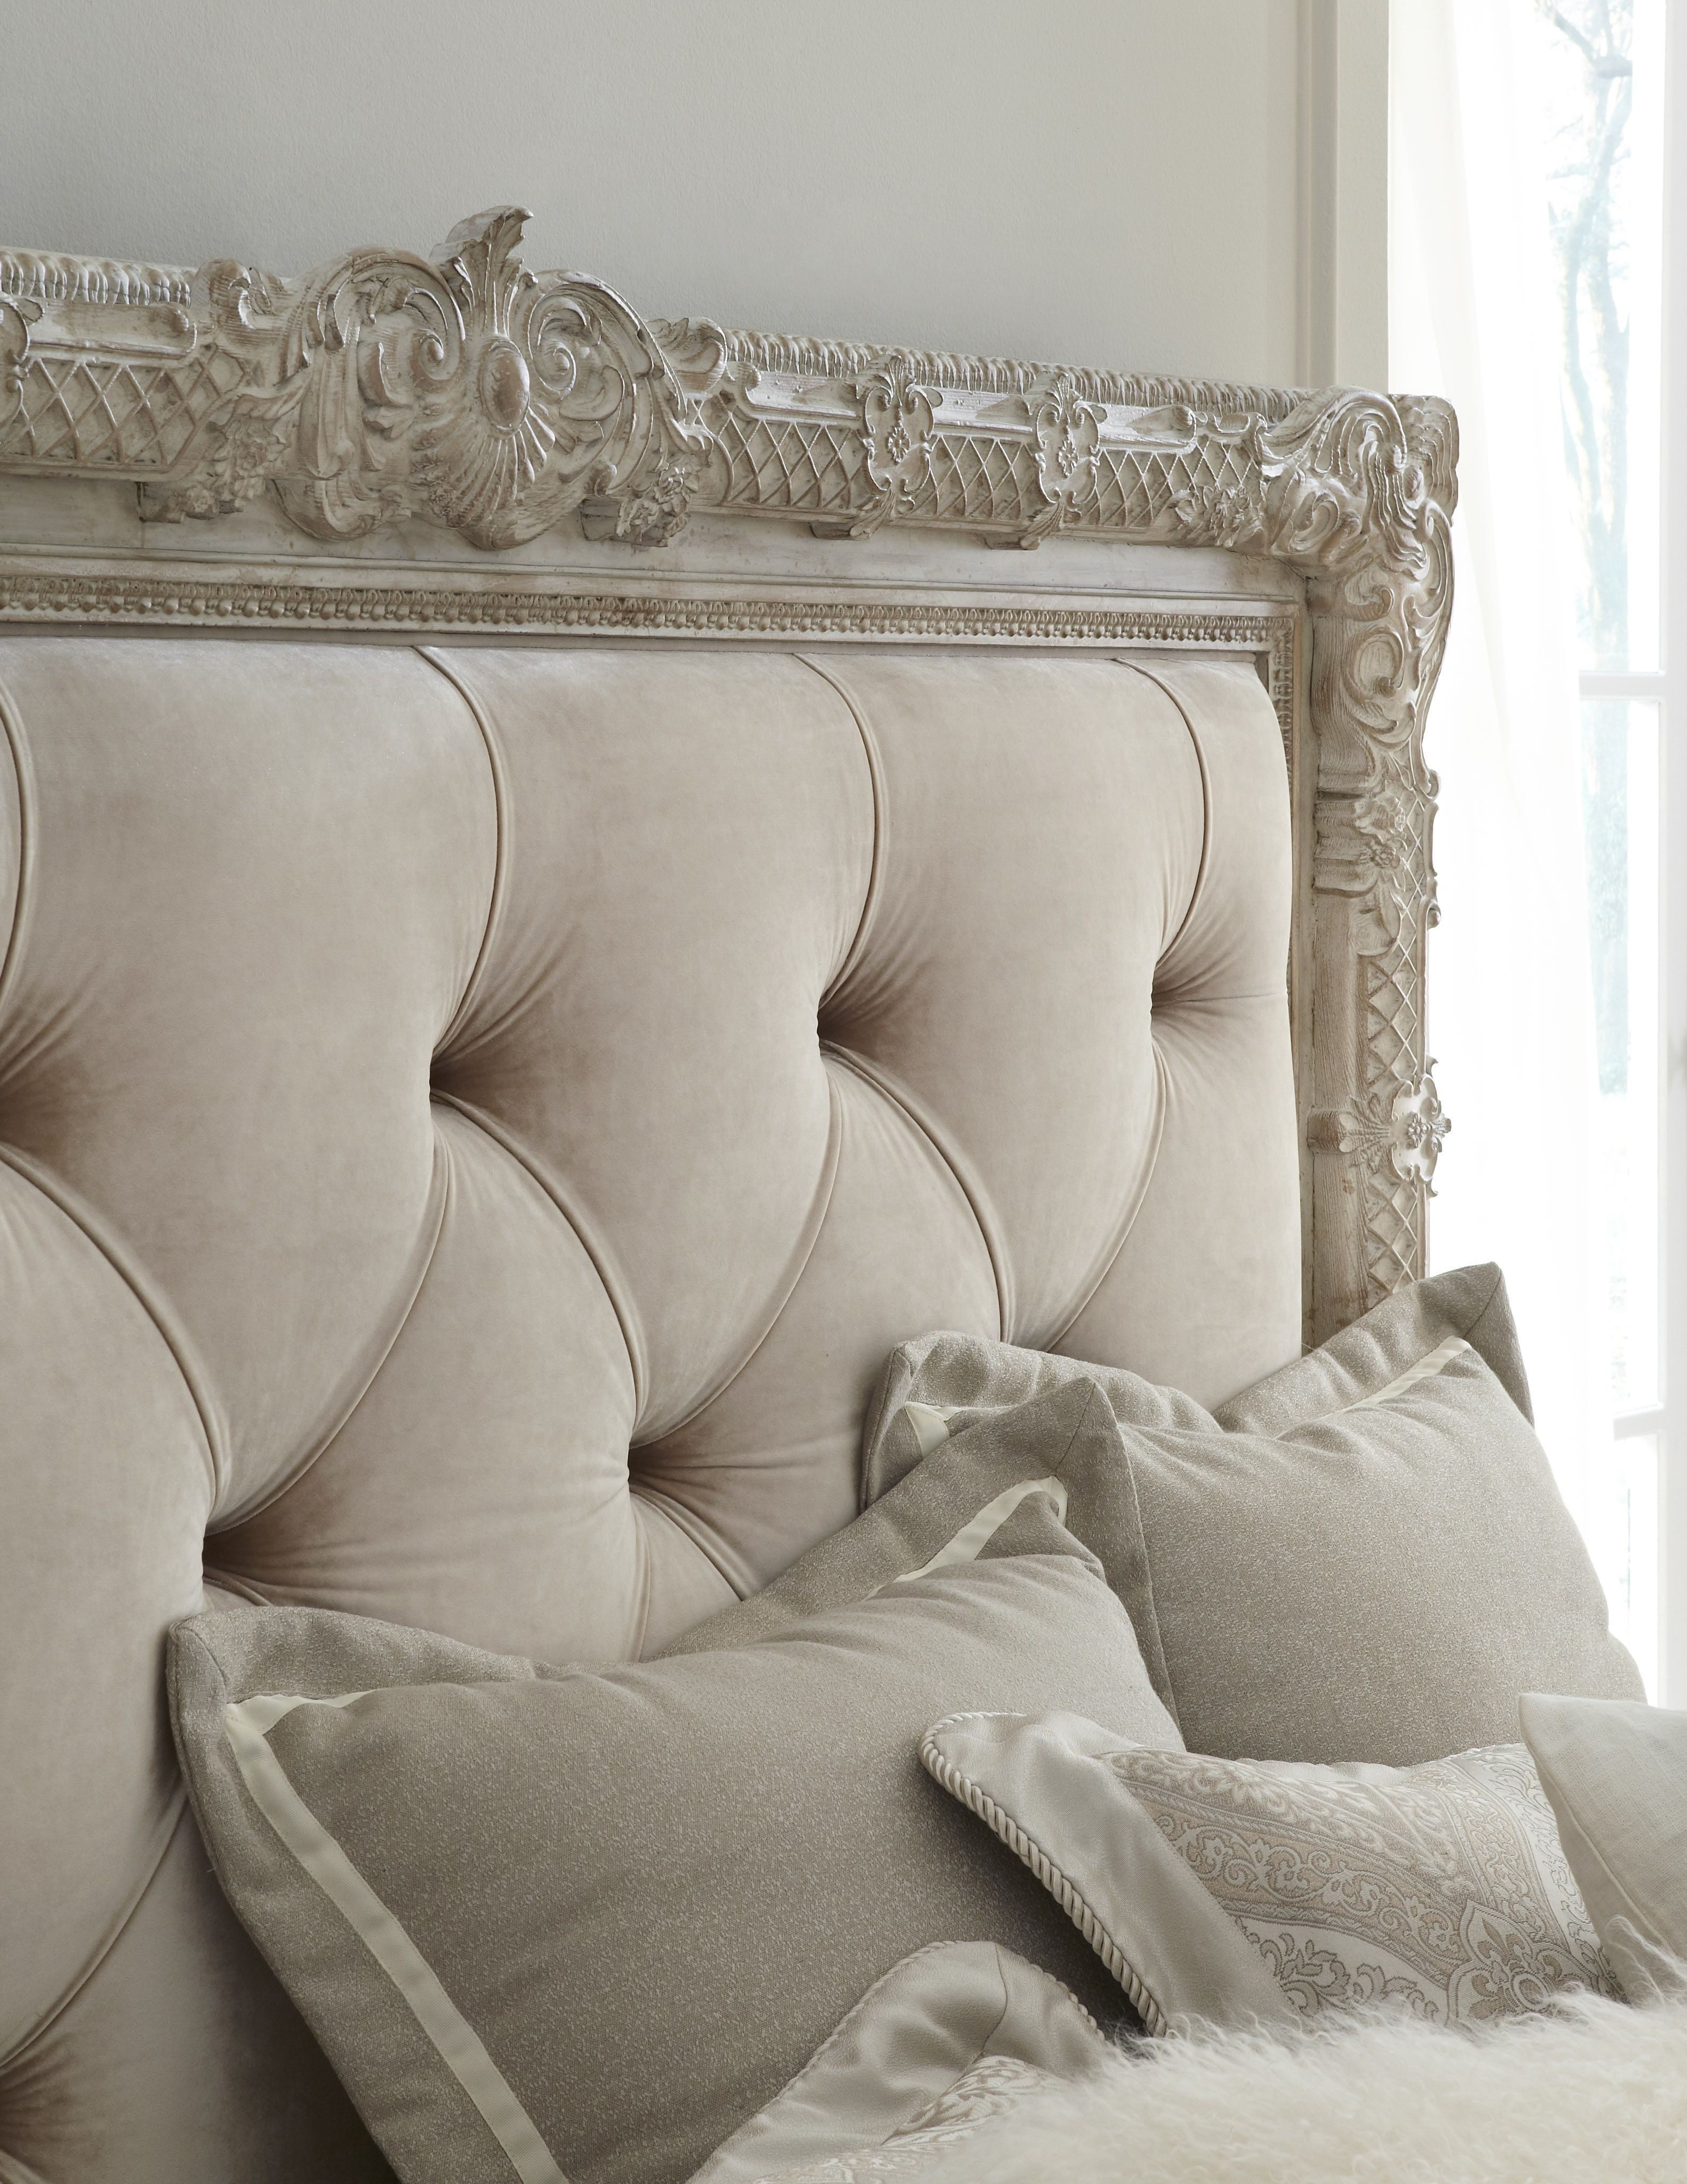 through trim img begin the senseful pins headboard can has tons searched nailhead pinterest diy ideas guess t holy even style how to many course tufted pinned have grail of i